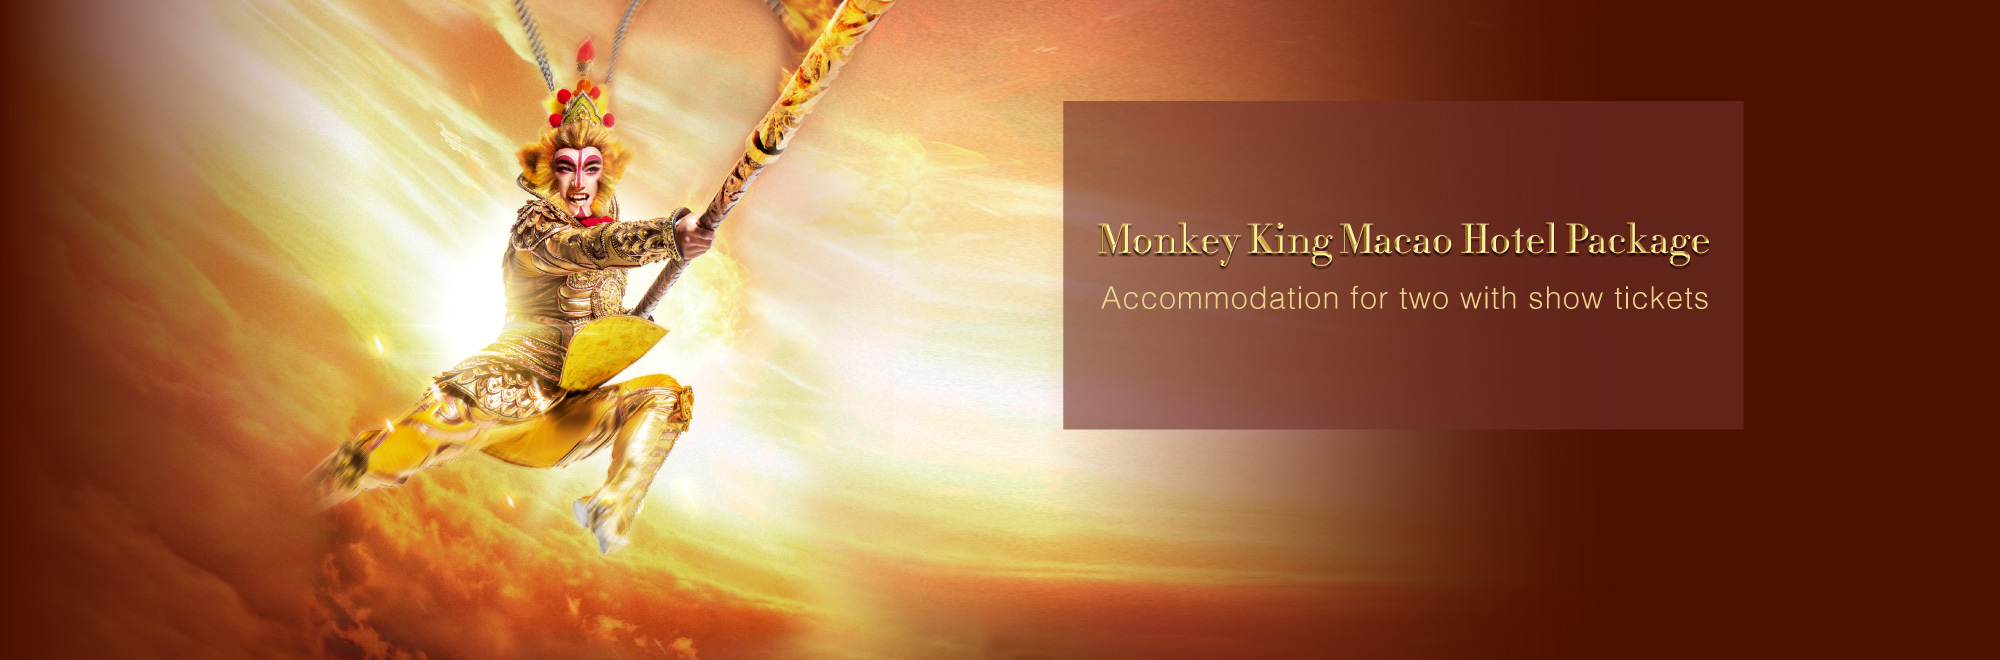 Monkey King Macao Hotel Package